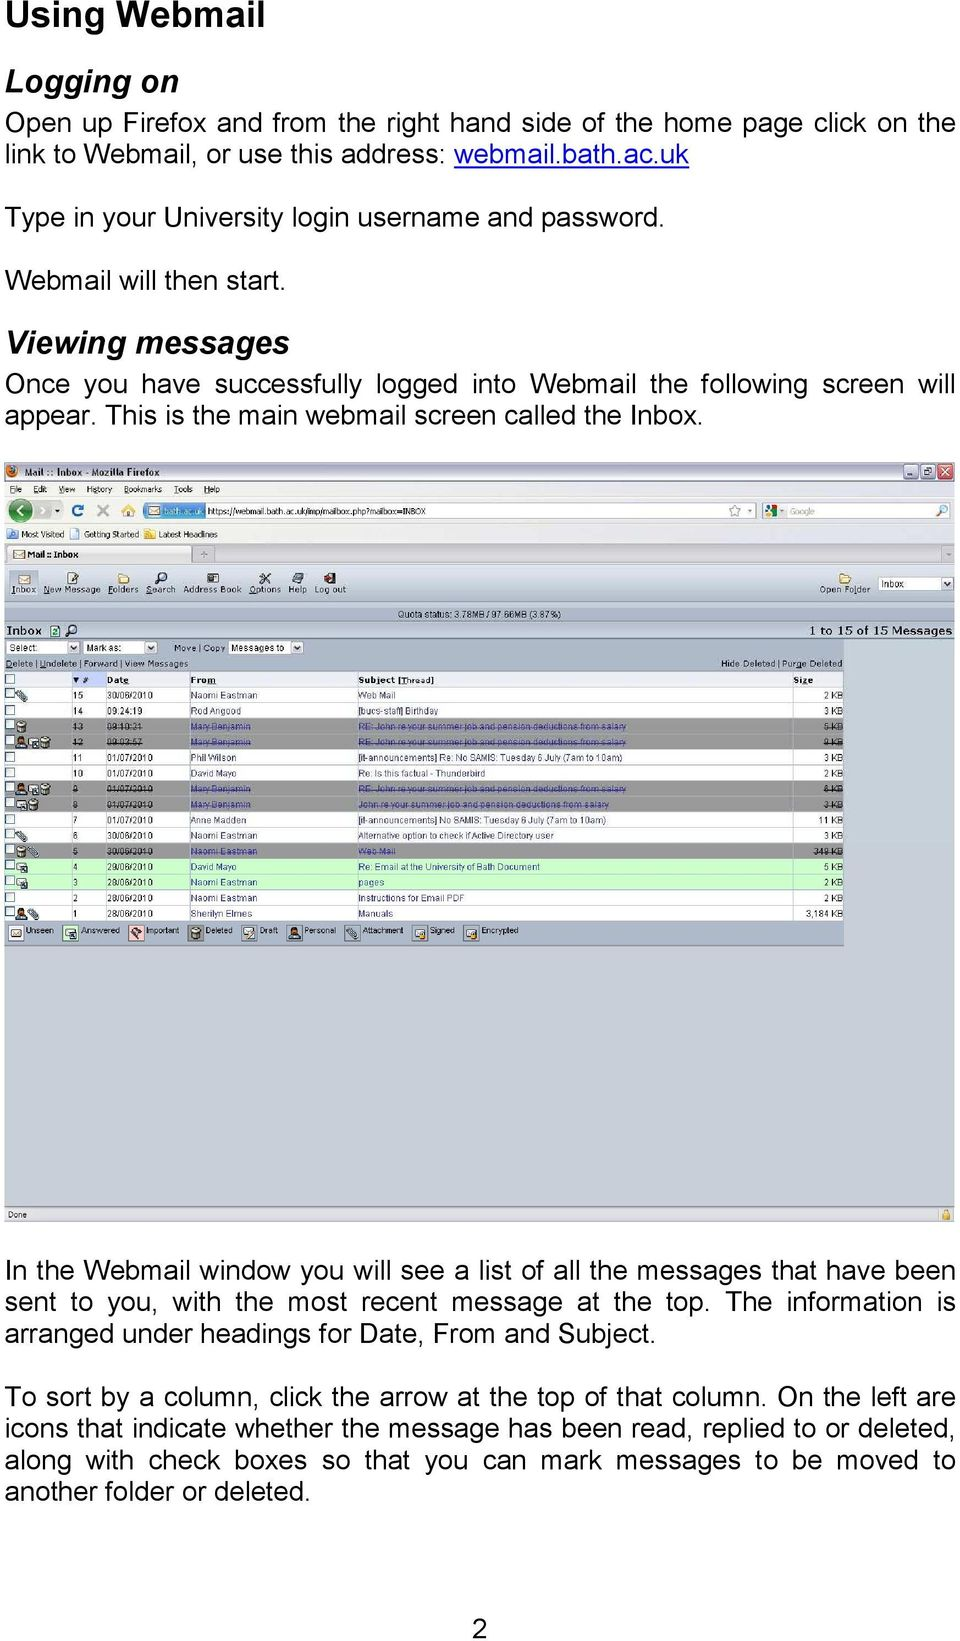 This is the main webmail screen called the Inbox. In the Webmail window you will see a list of all the messages that have been sent to you, with the most recent message at the top.